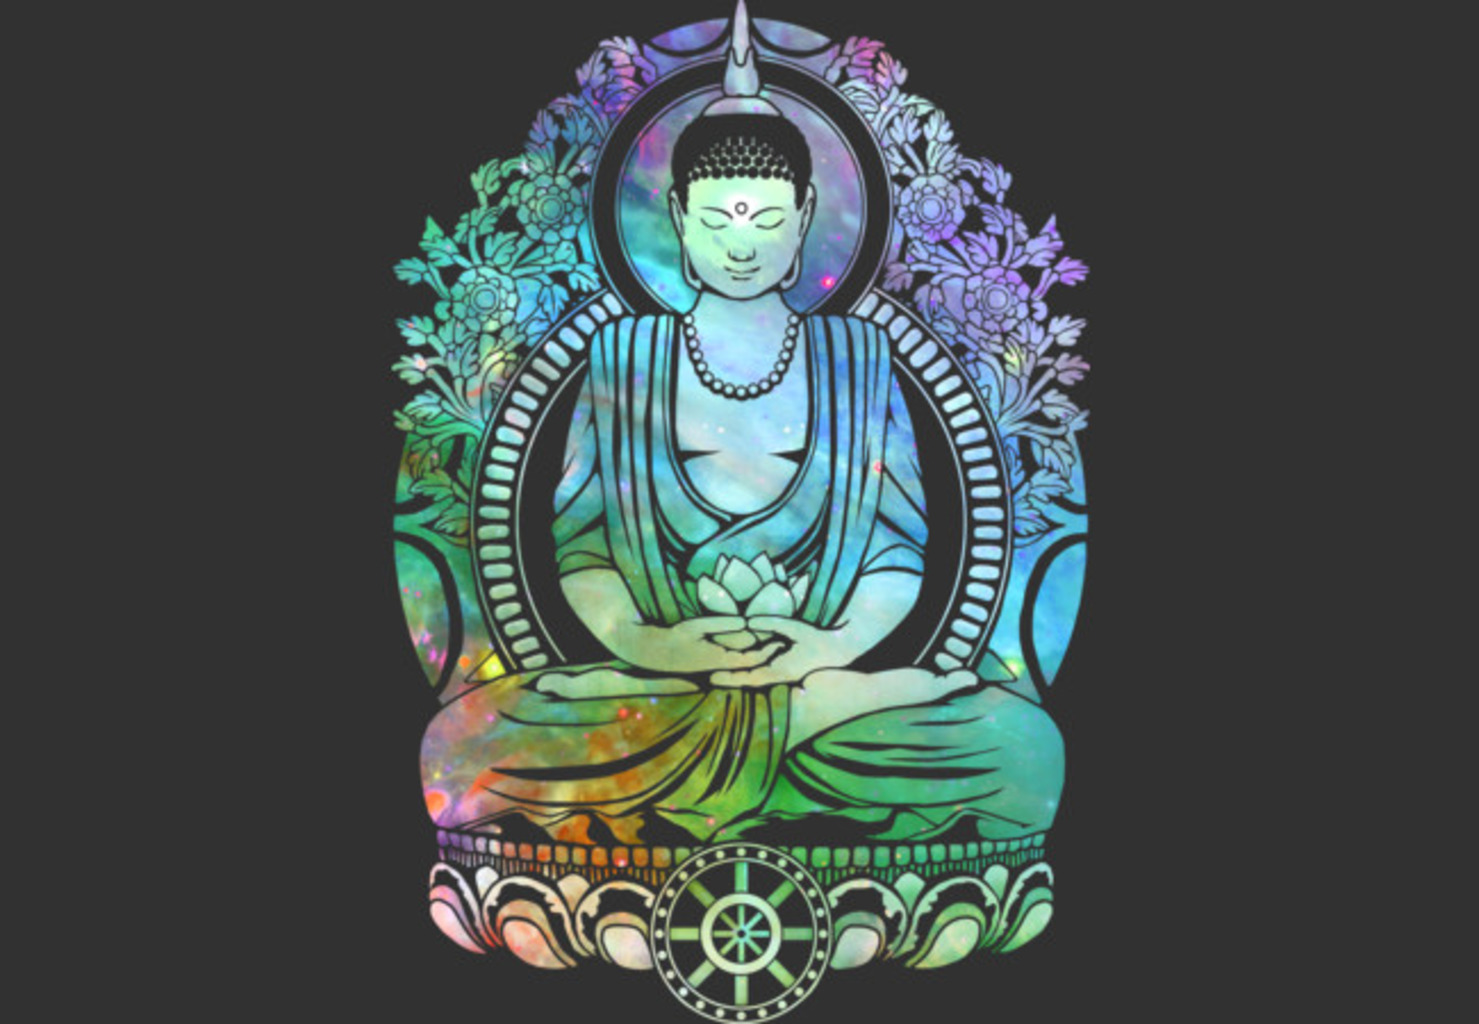 Design by Humans: Cosmic Buddha Spectrum